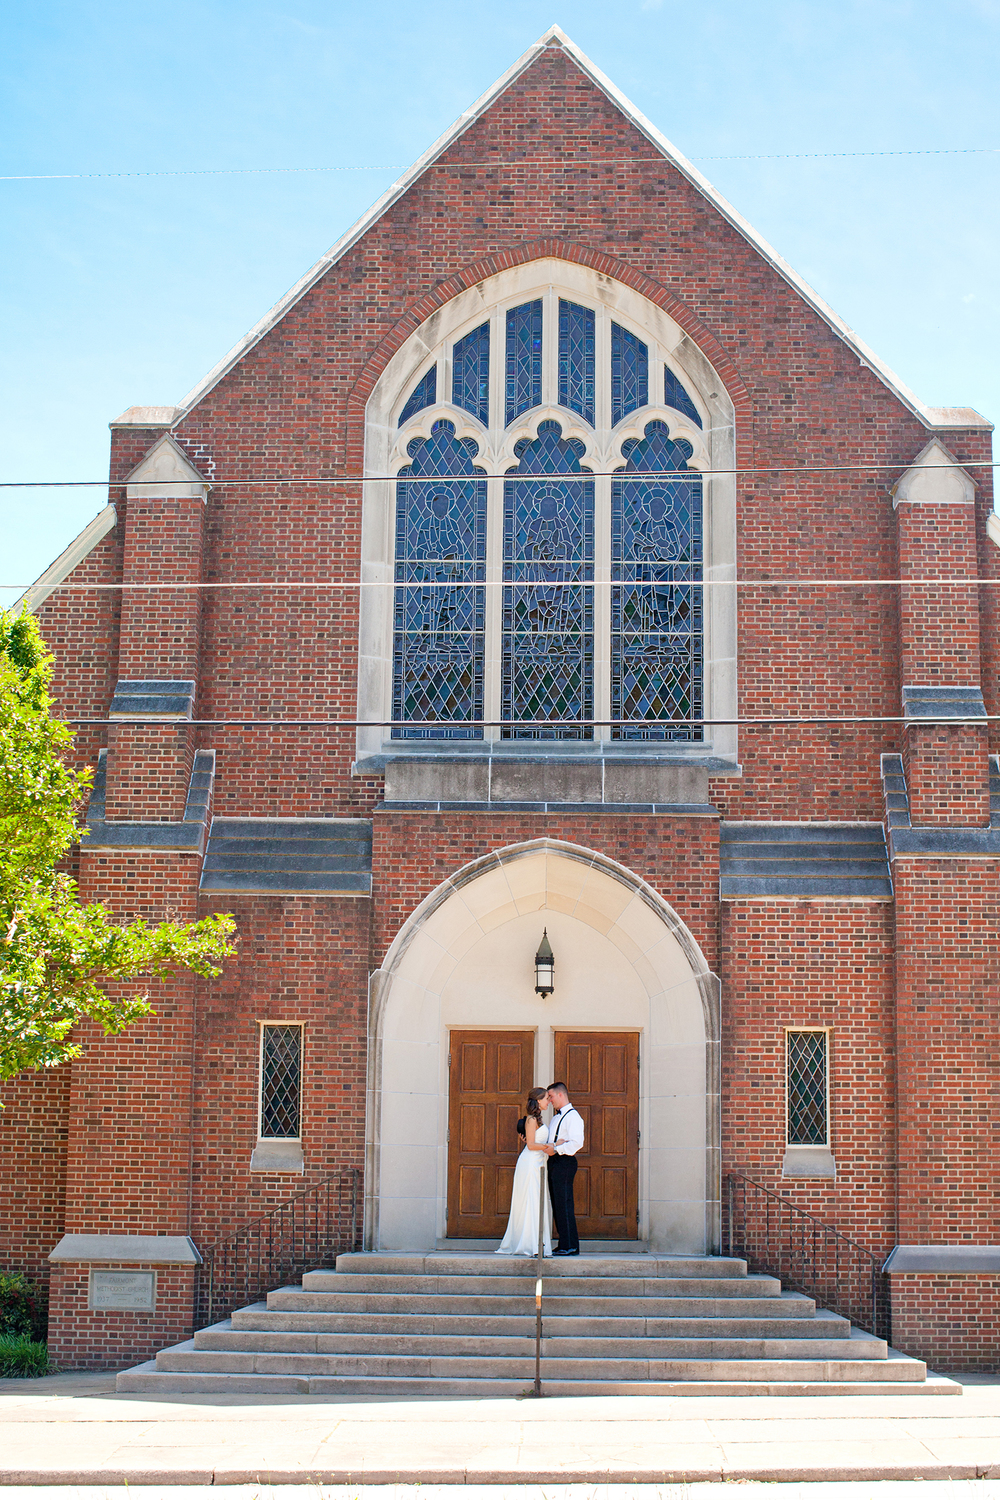 A Bride & Groom in front of Fairmont United Methodist Church